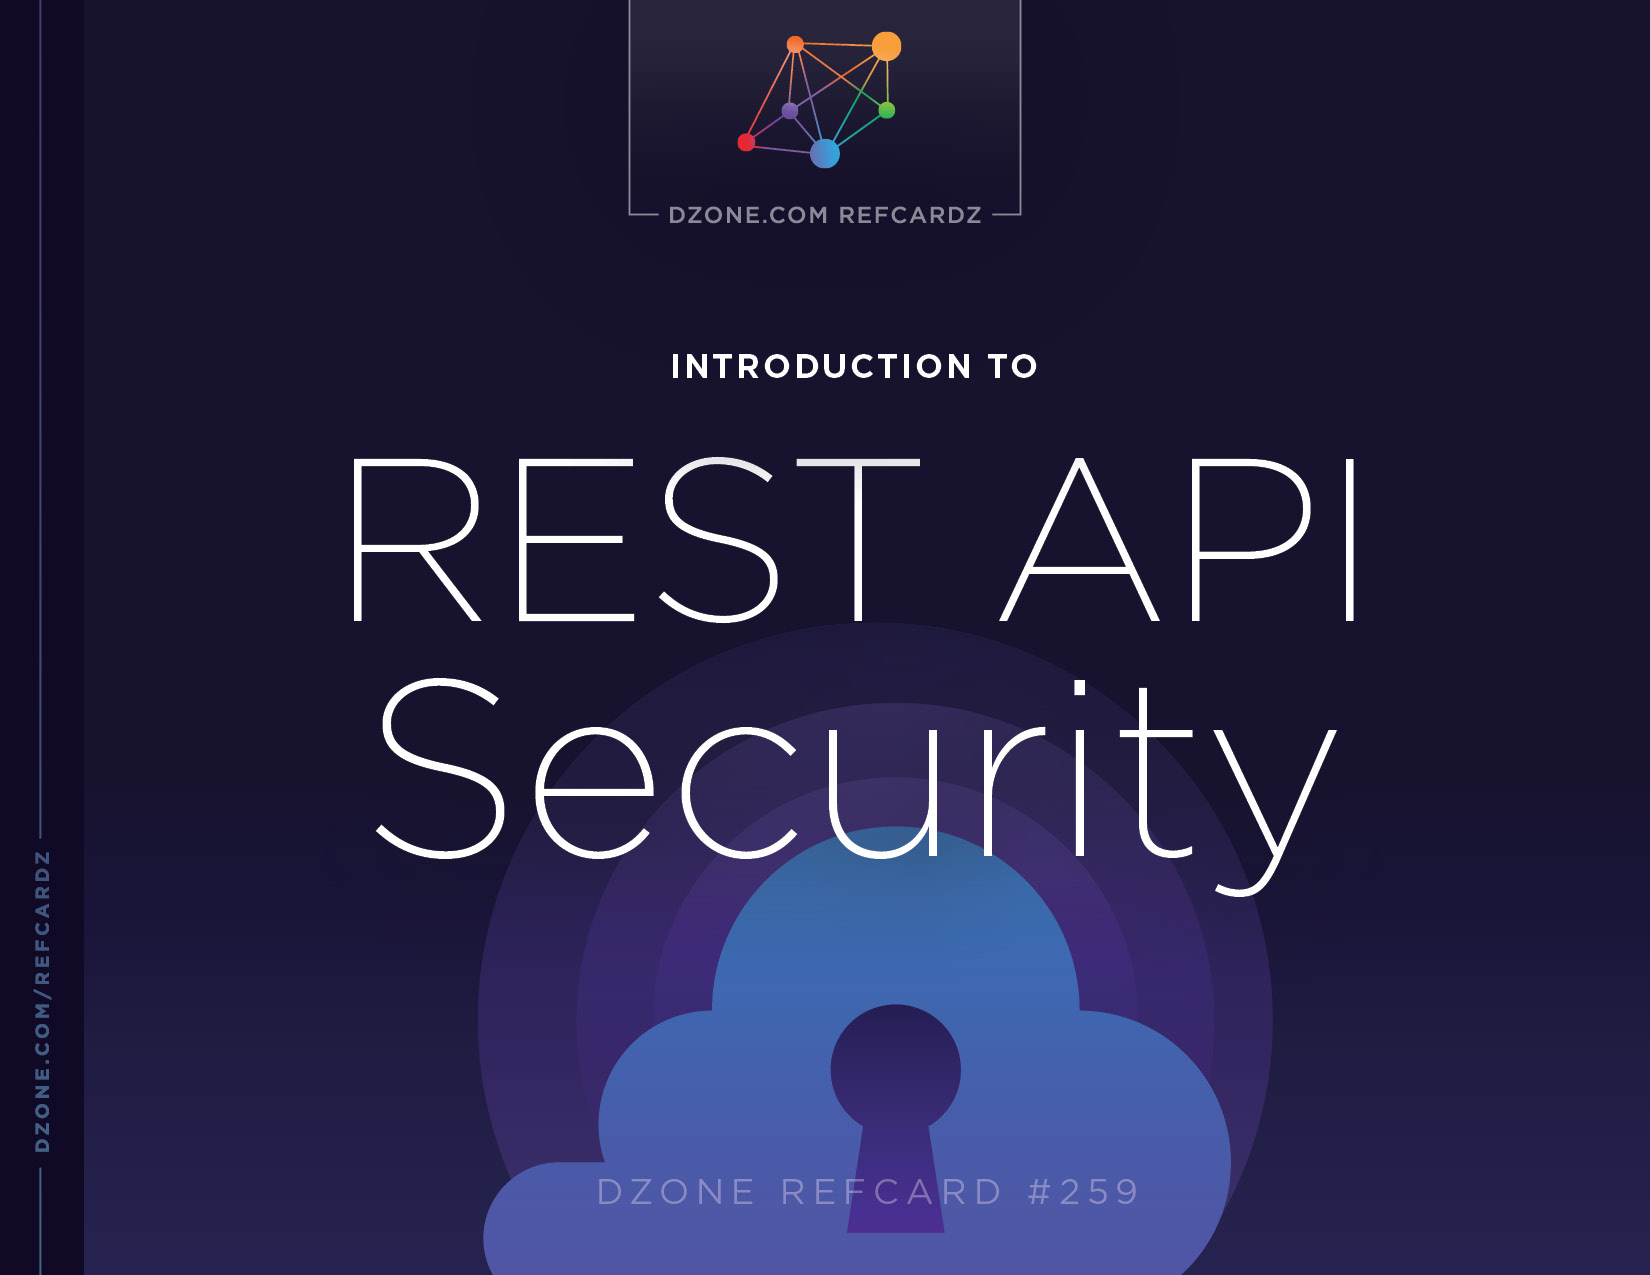 REST API Security - DZone - Refcardz